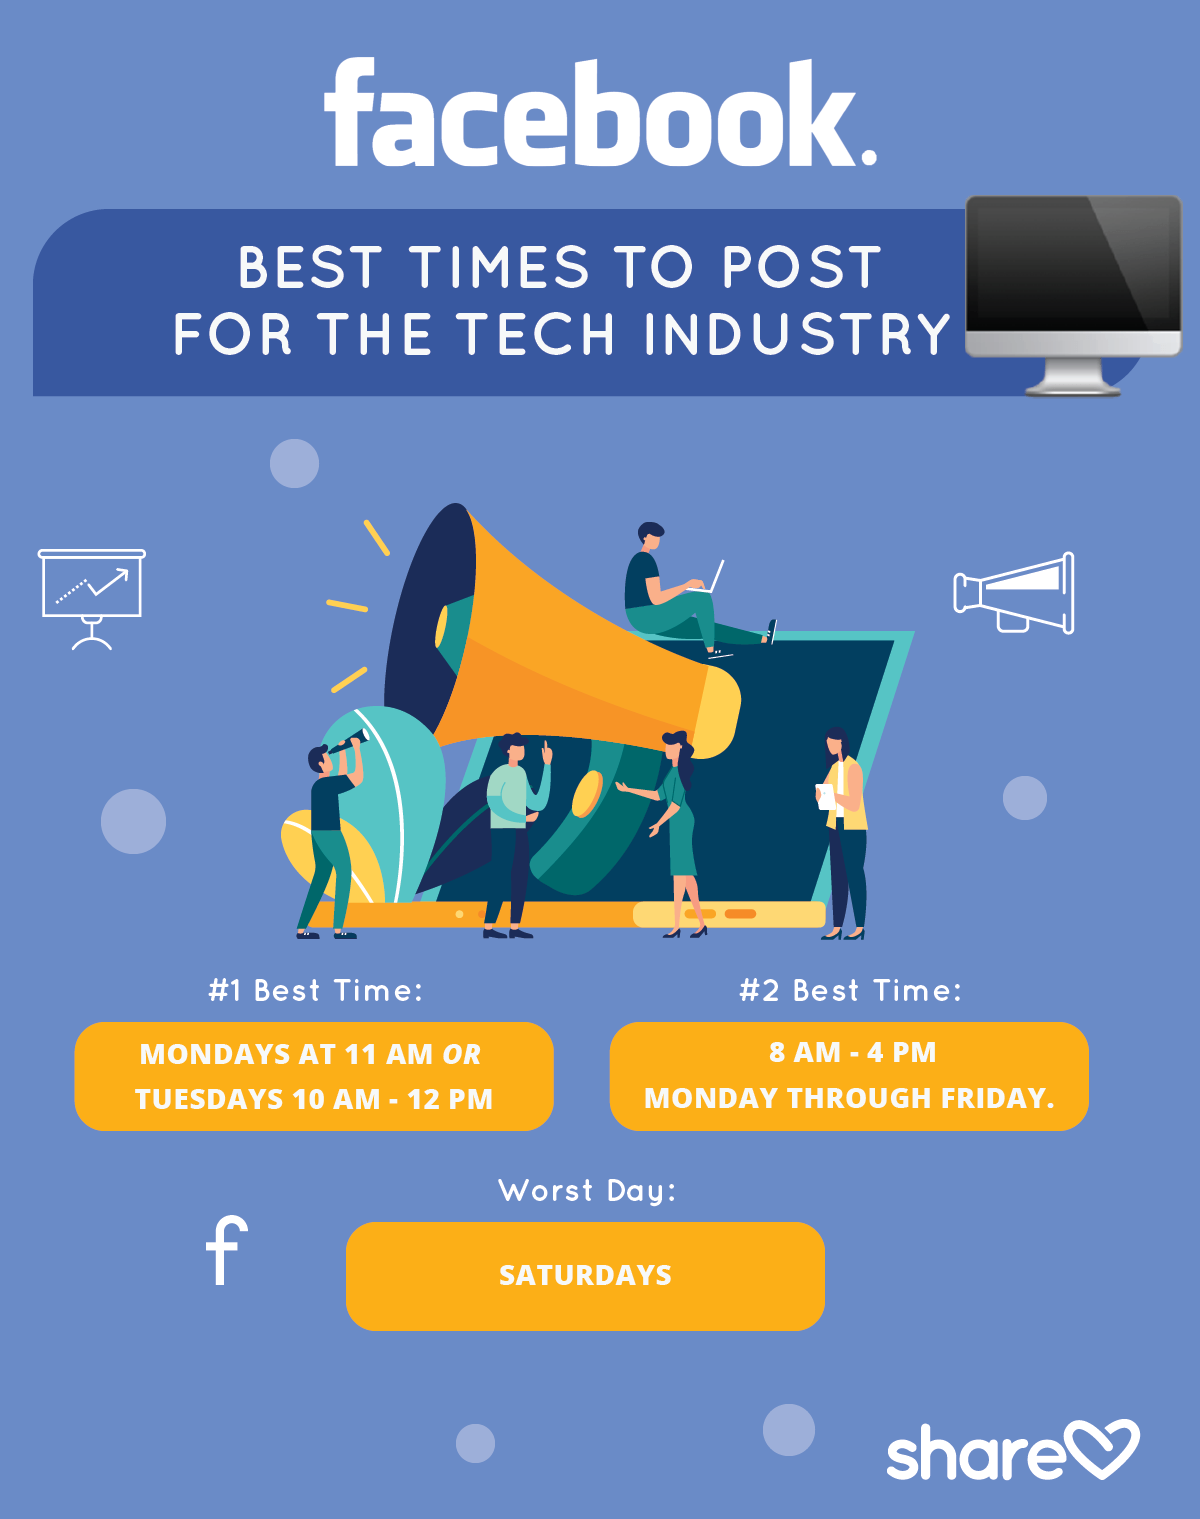 Best Times to Post on Facebook for the tech industry